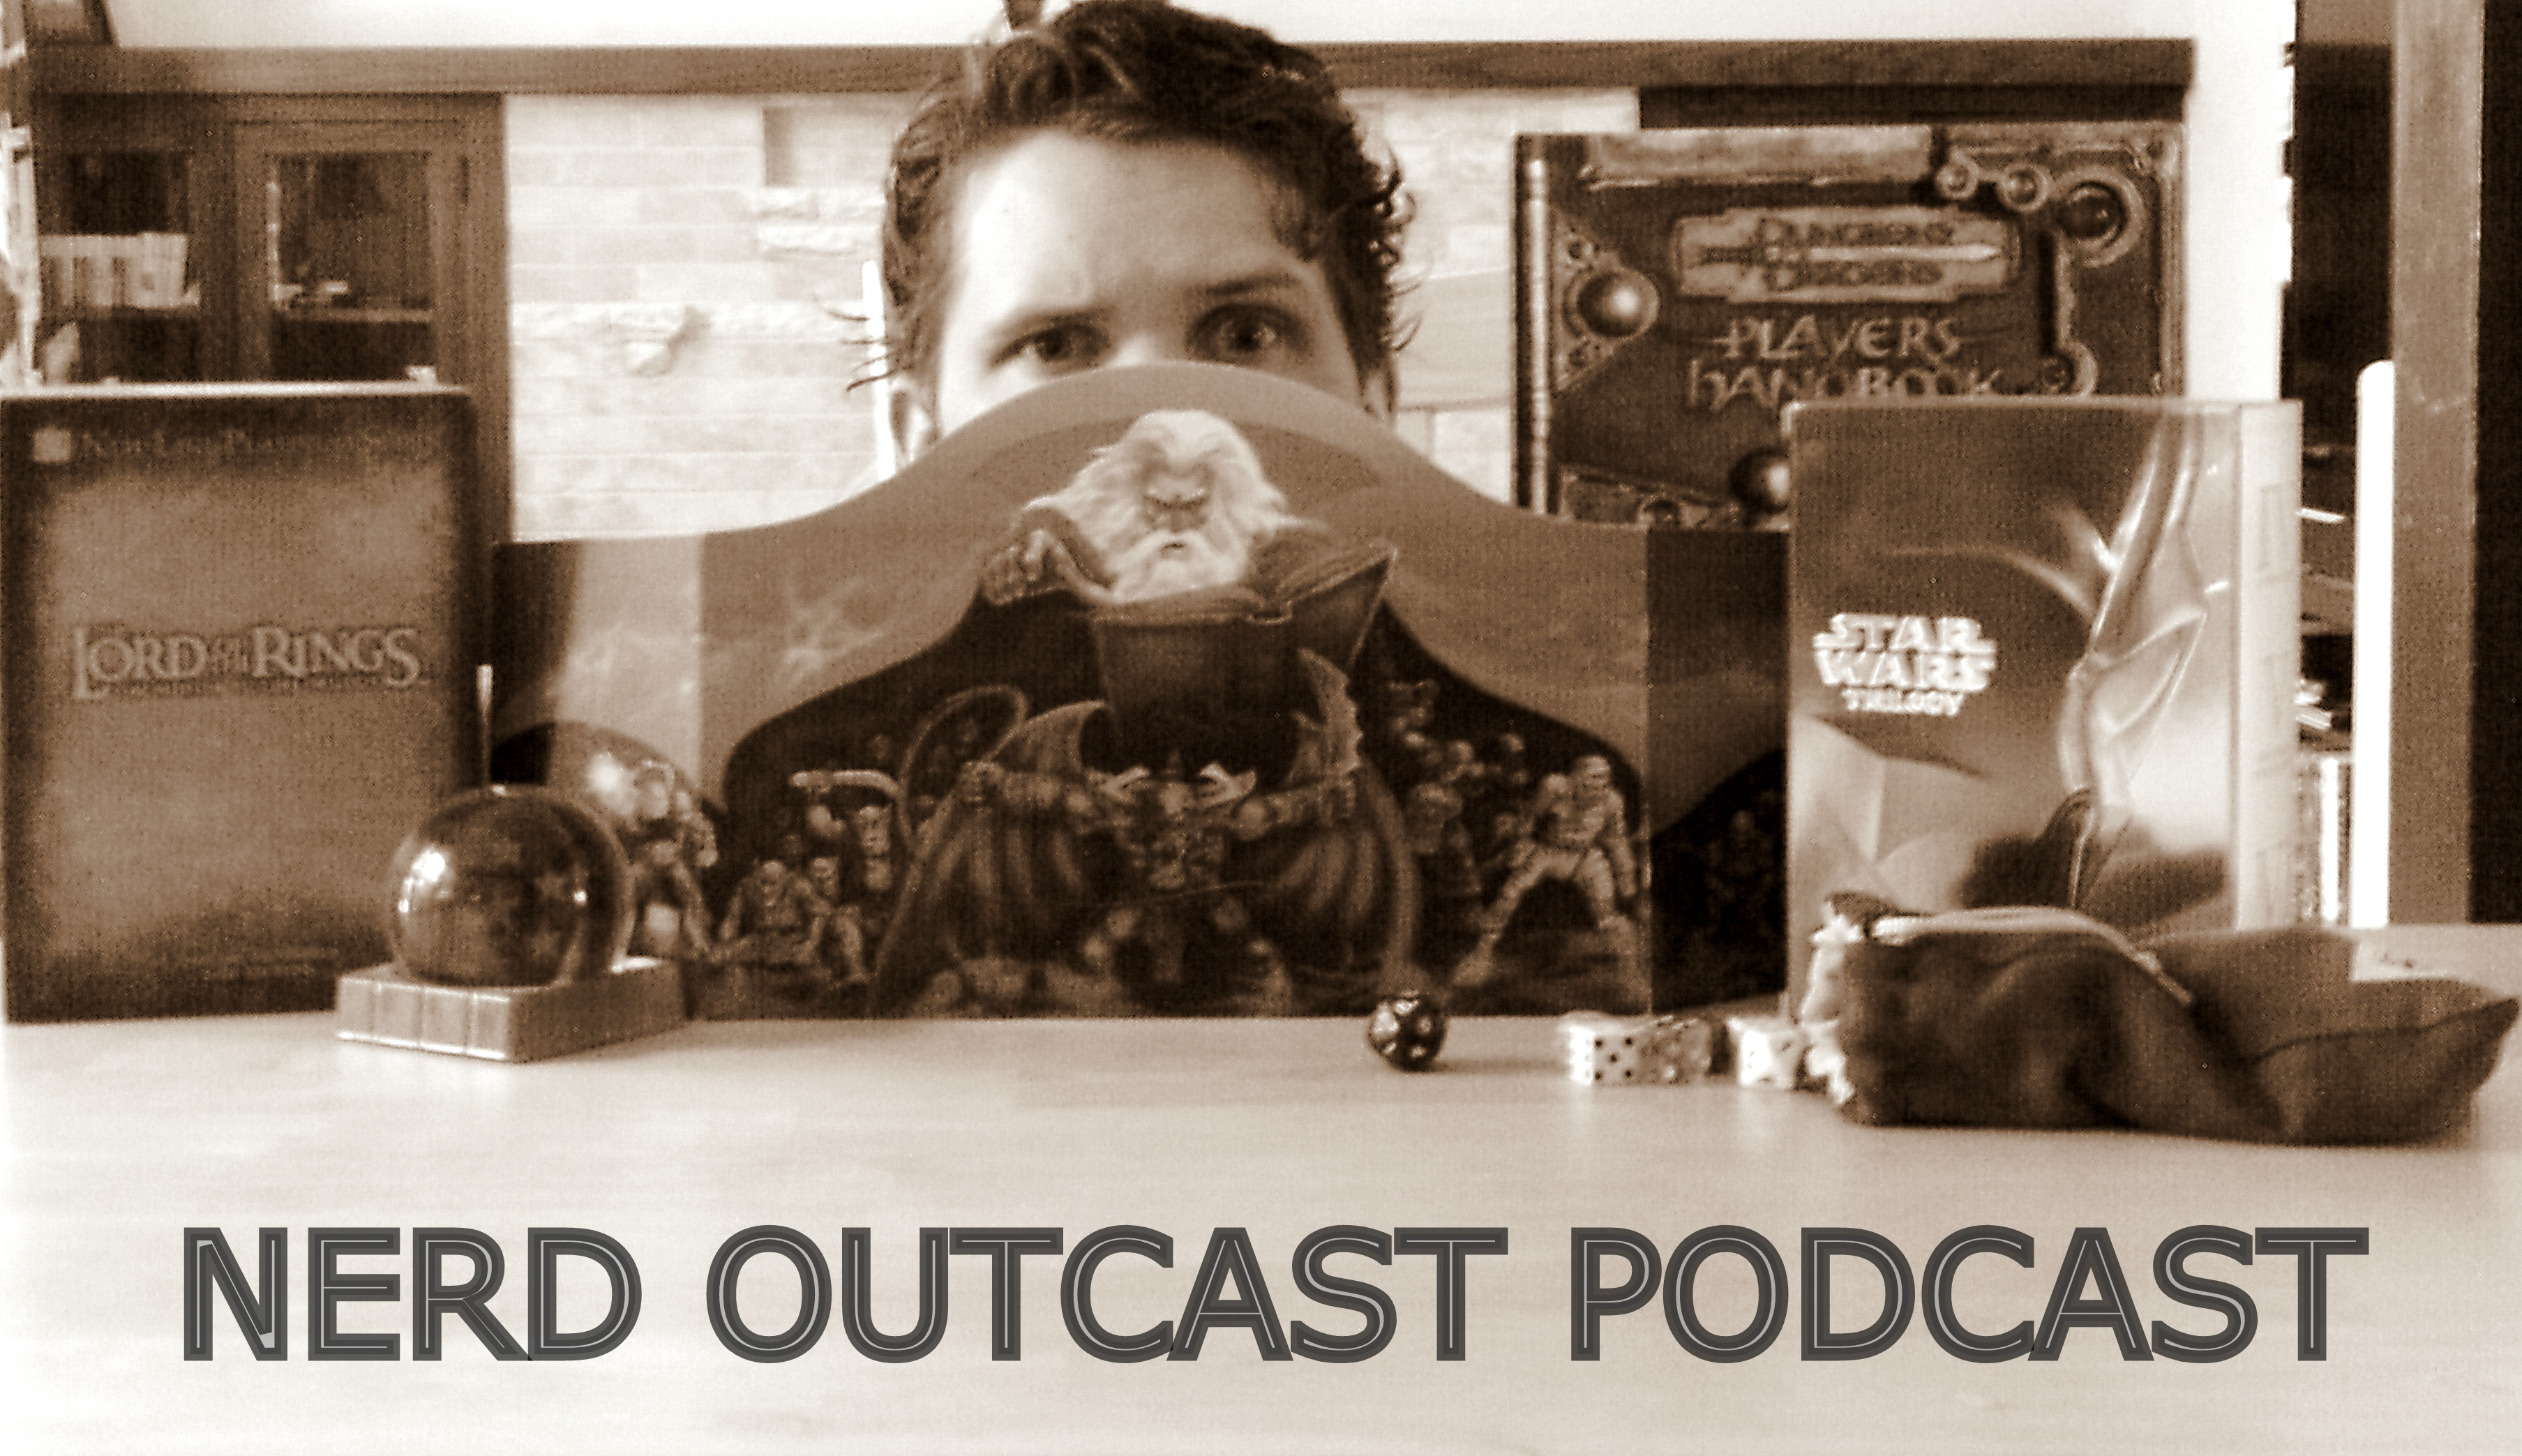 Nerd OutCast Podcast